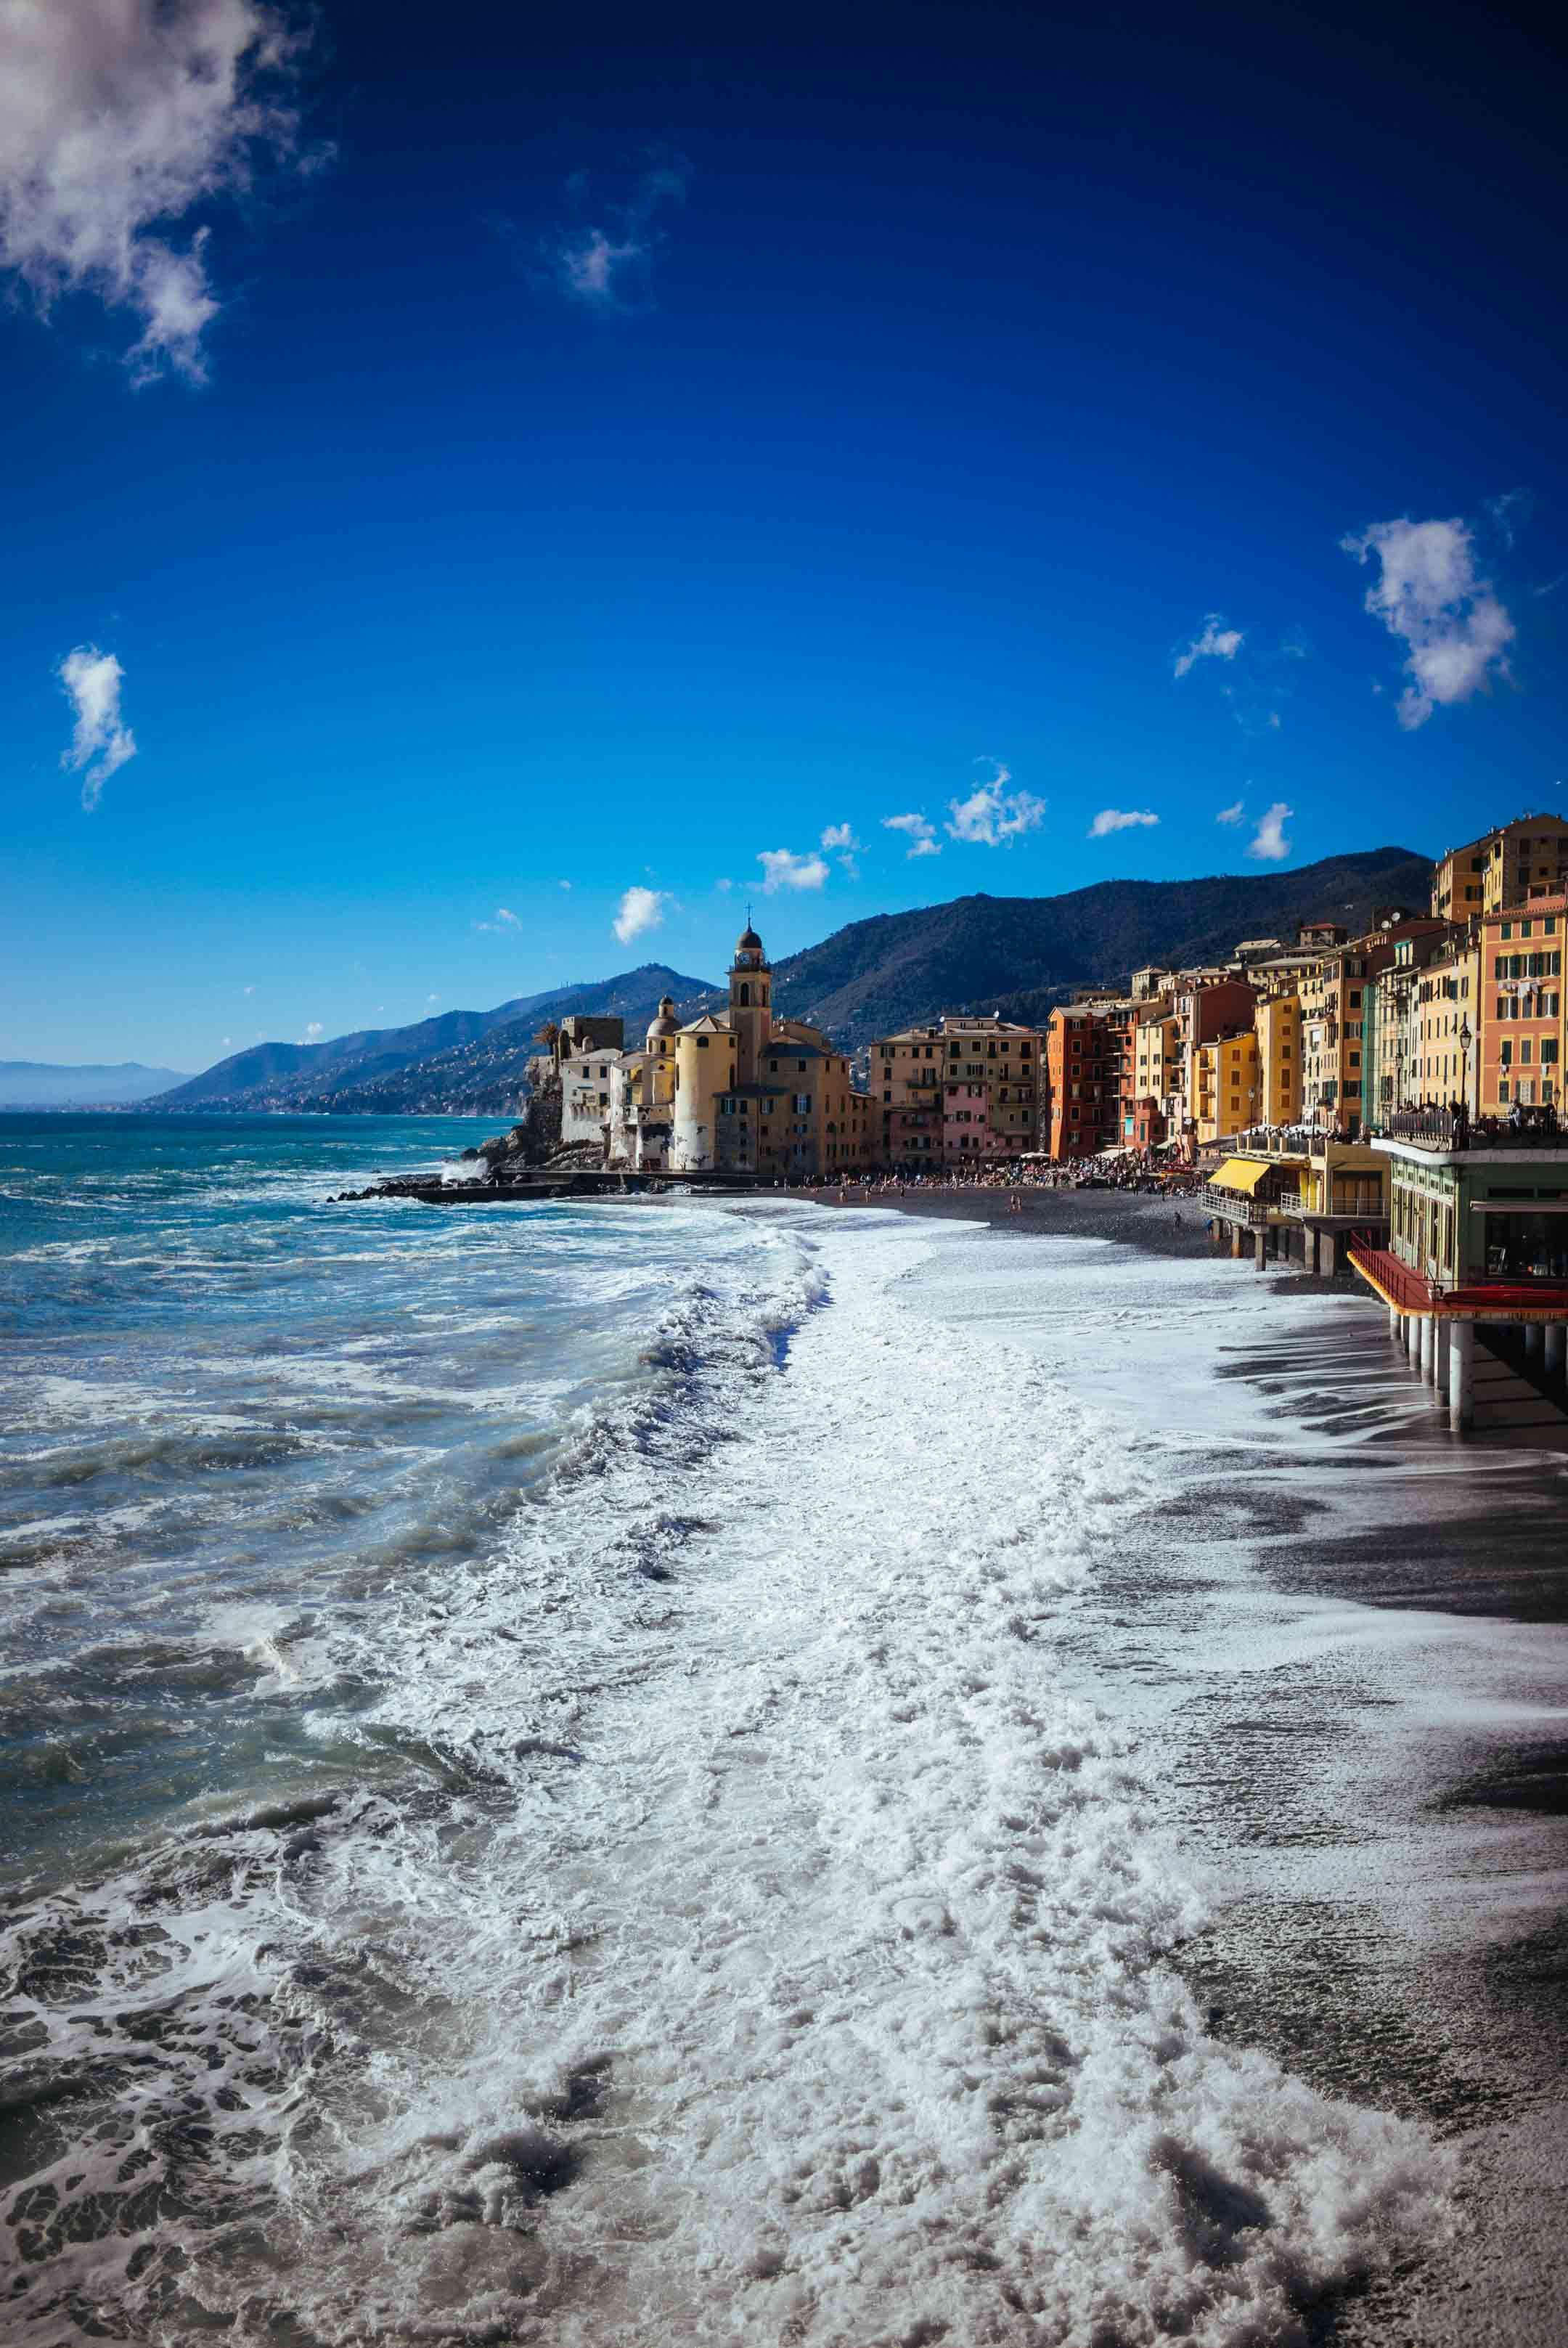 The Taste SF recommends that you visit this Italian Beach town that no one knows about - Camogli, Italy.